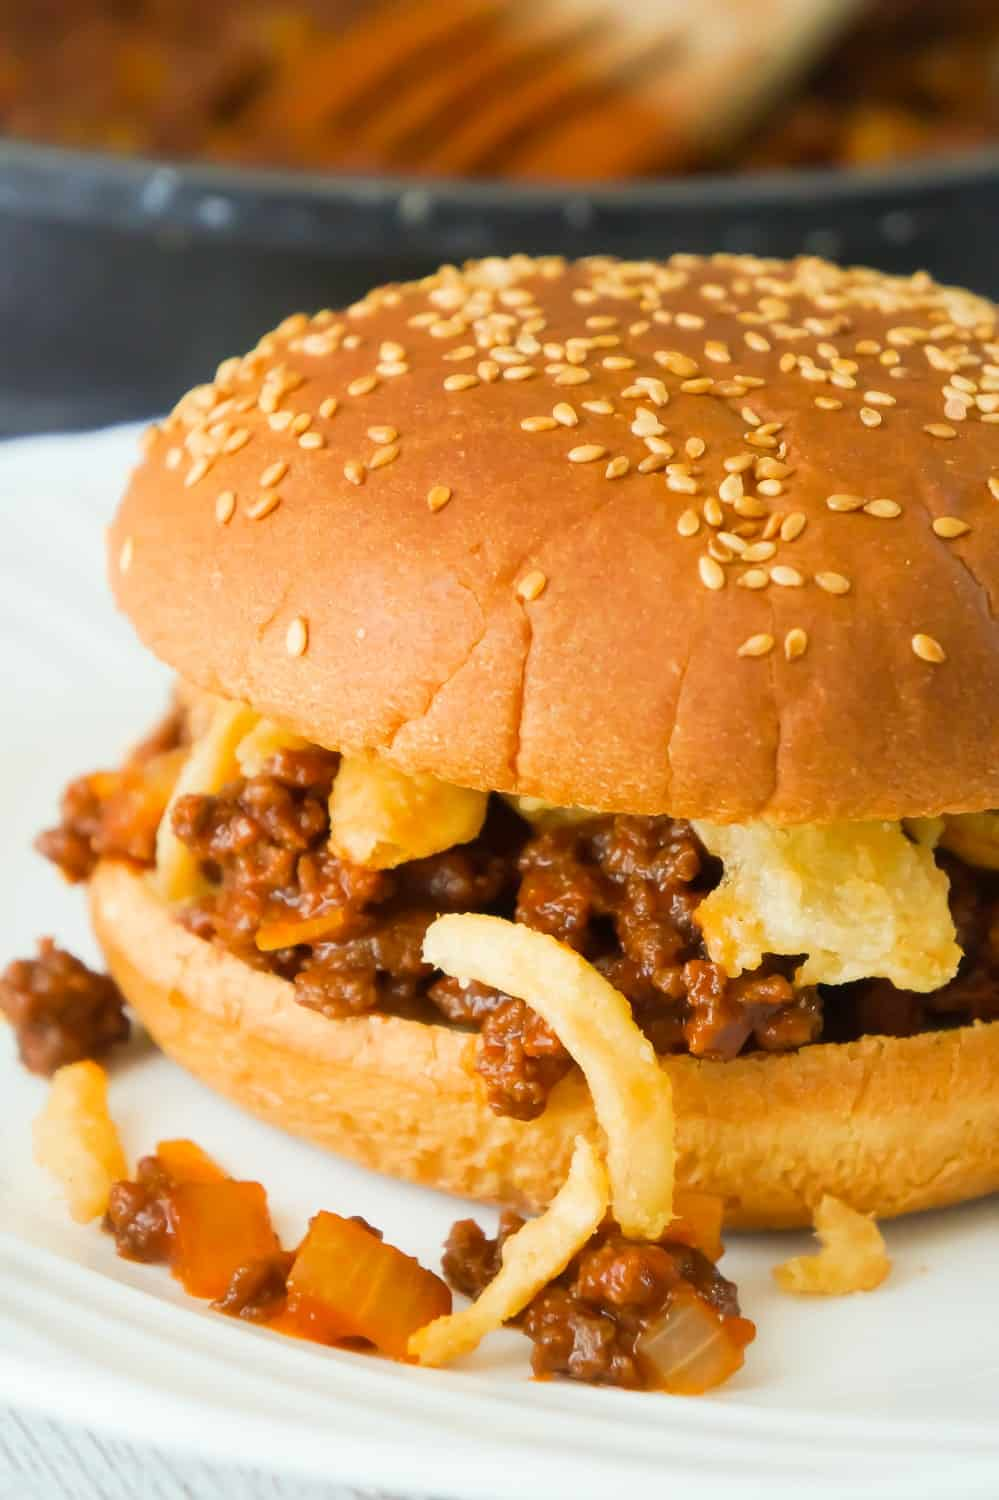 Easy Homemade Sloppy Joes are a simple weeknight dinner recipe your whole family will love. These sandwiches are loaded with ground beef tossed in a sweet tomato sauce and topped with French's fried onions.